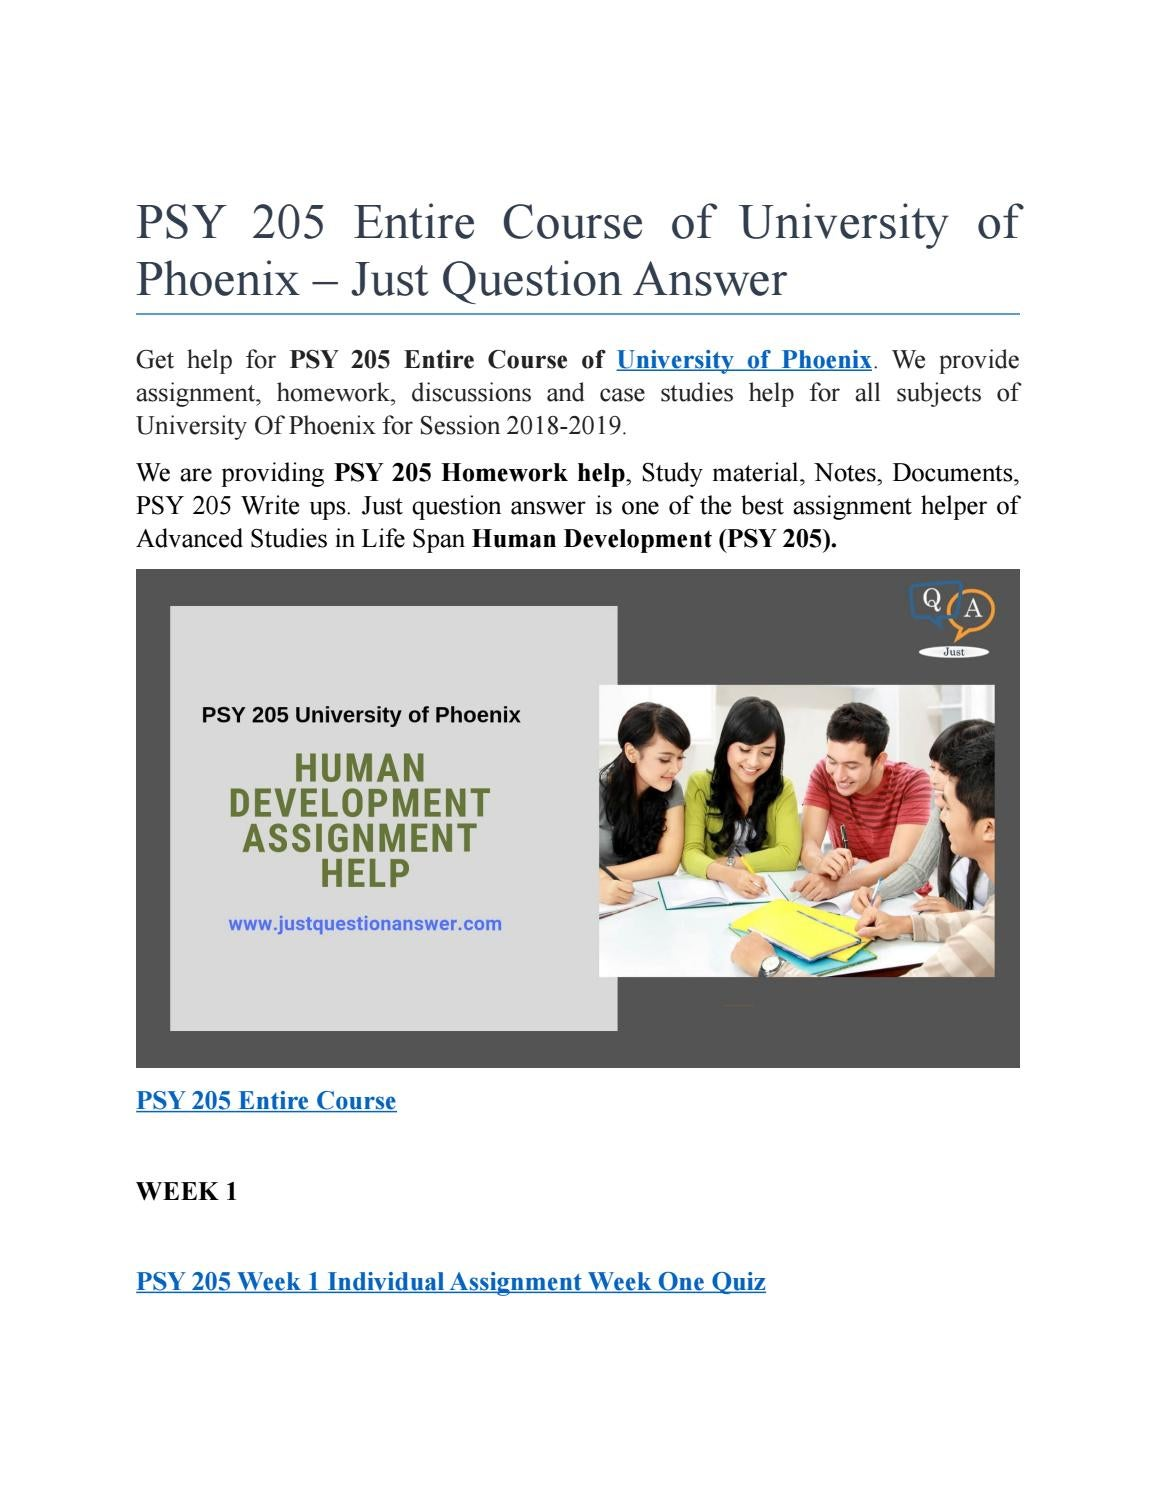 Psy 205 Entire Course Of University Of Phoenix Just Question Answer By Justquestionanswer Issuu